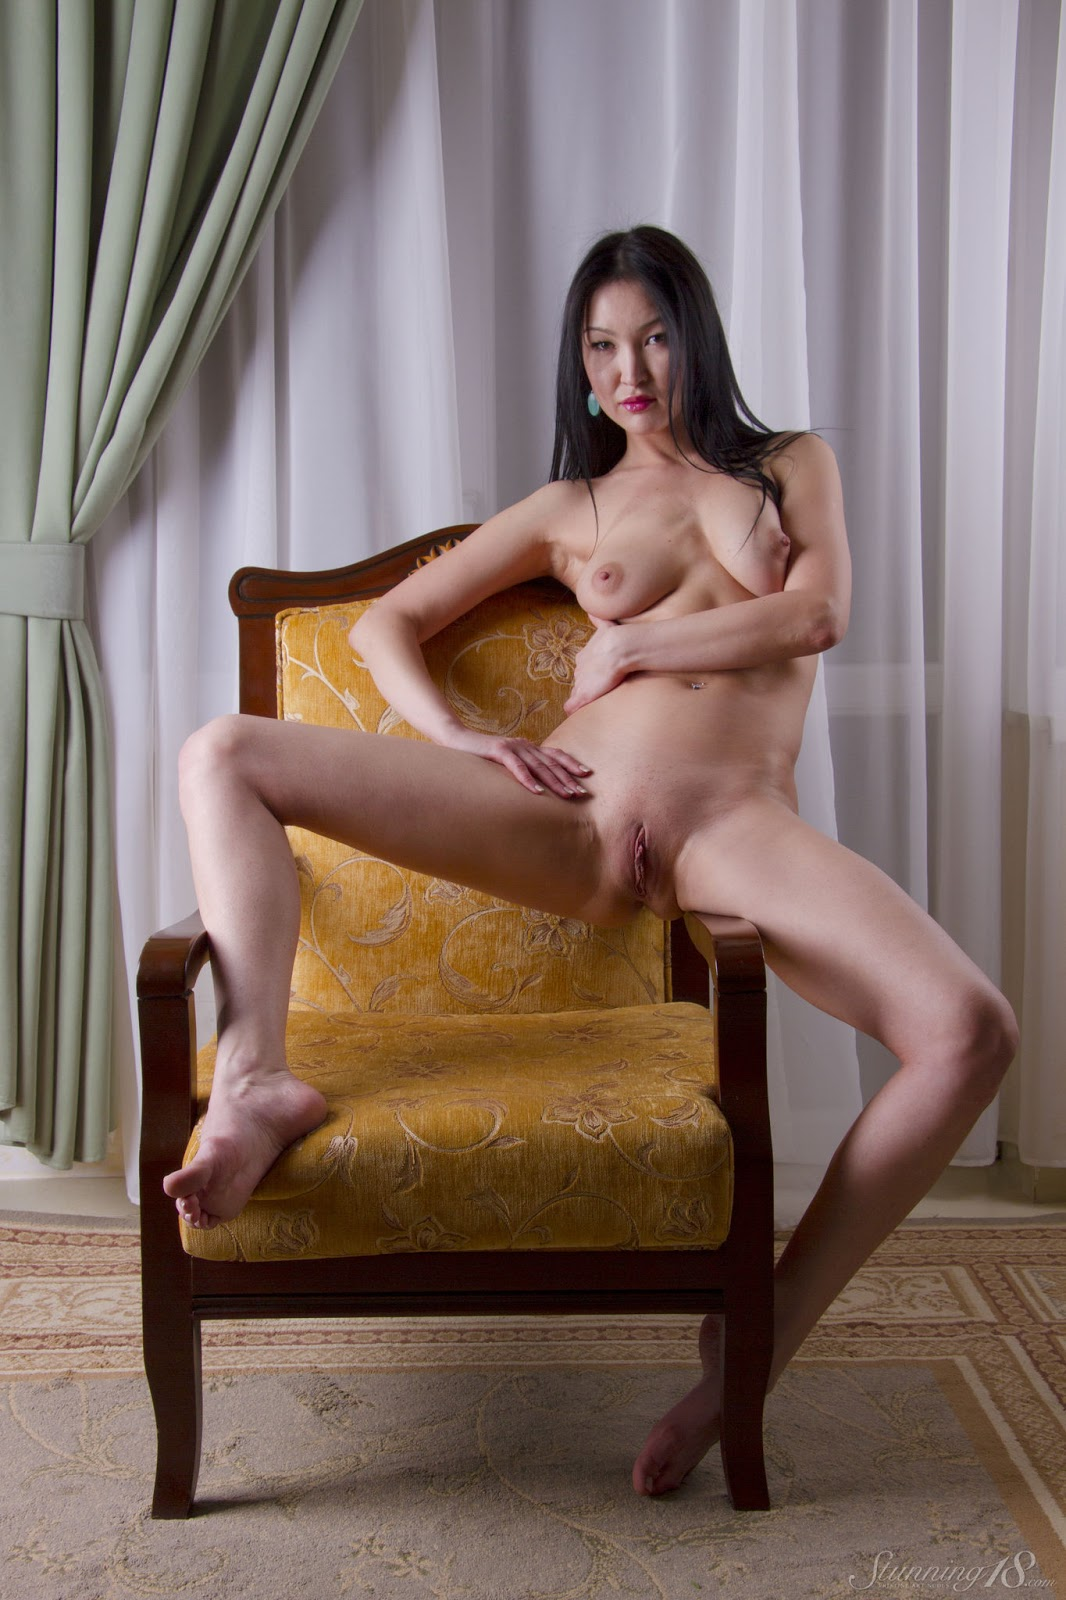 Rusya: Lets PlayAb Exercise for More Powerful Orgasms 12